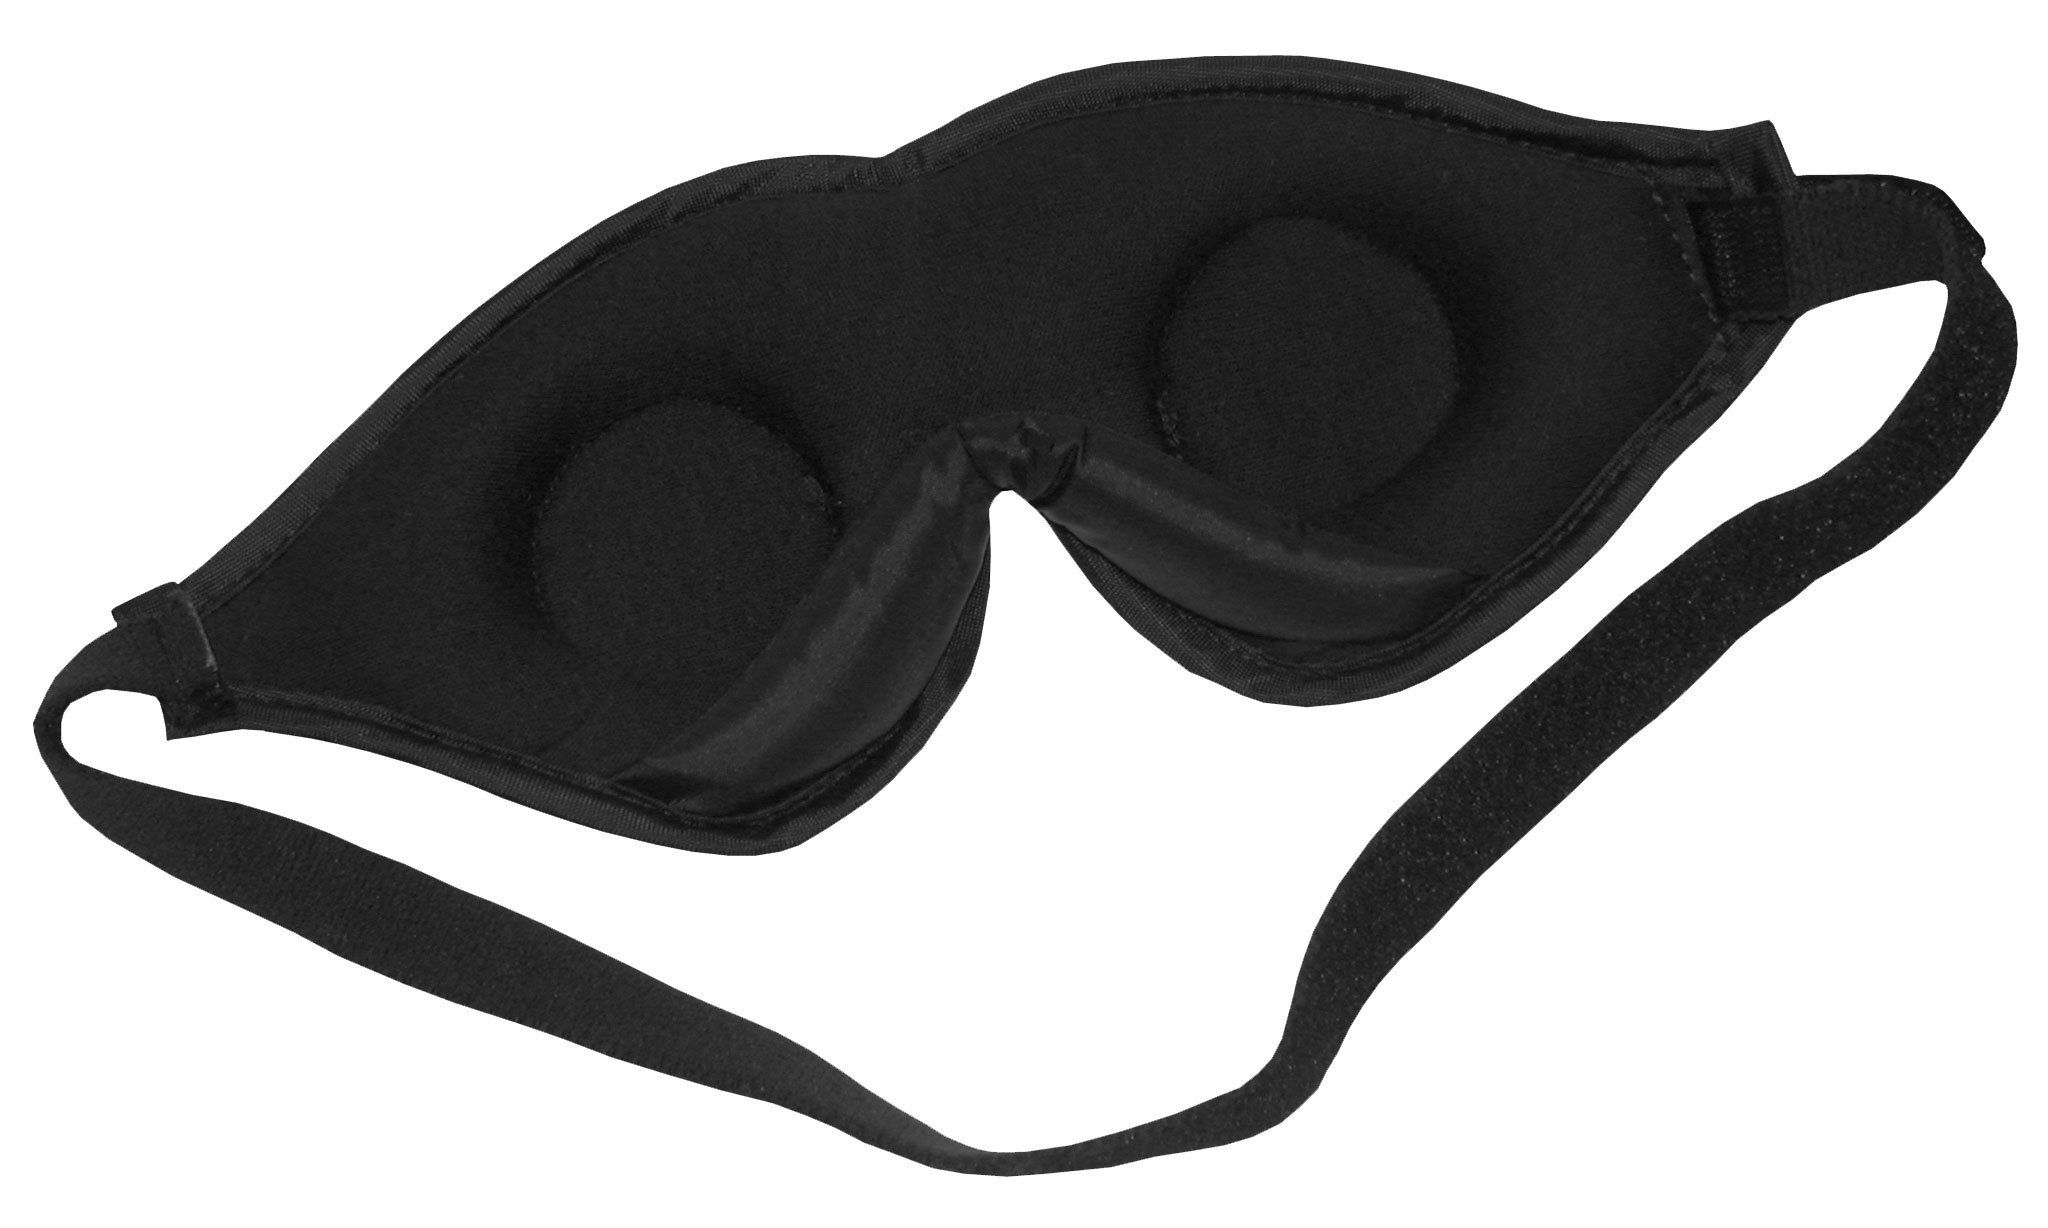 1cb1d6741 Amazon.com  Dream Essentials Escape Luxury Travel and Sleep Mask with  Earplugs and Carry